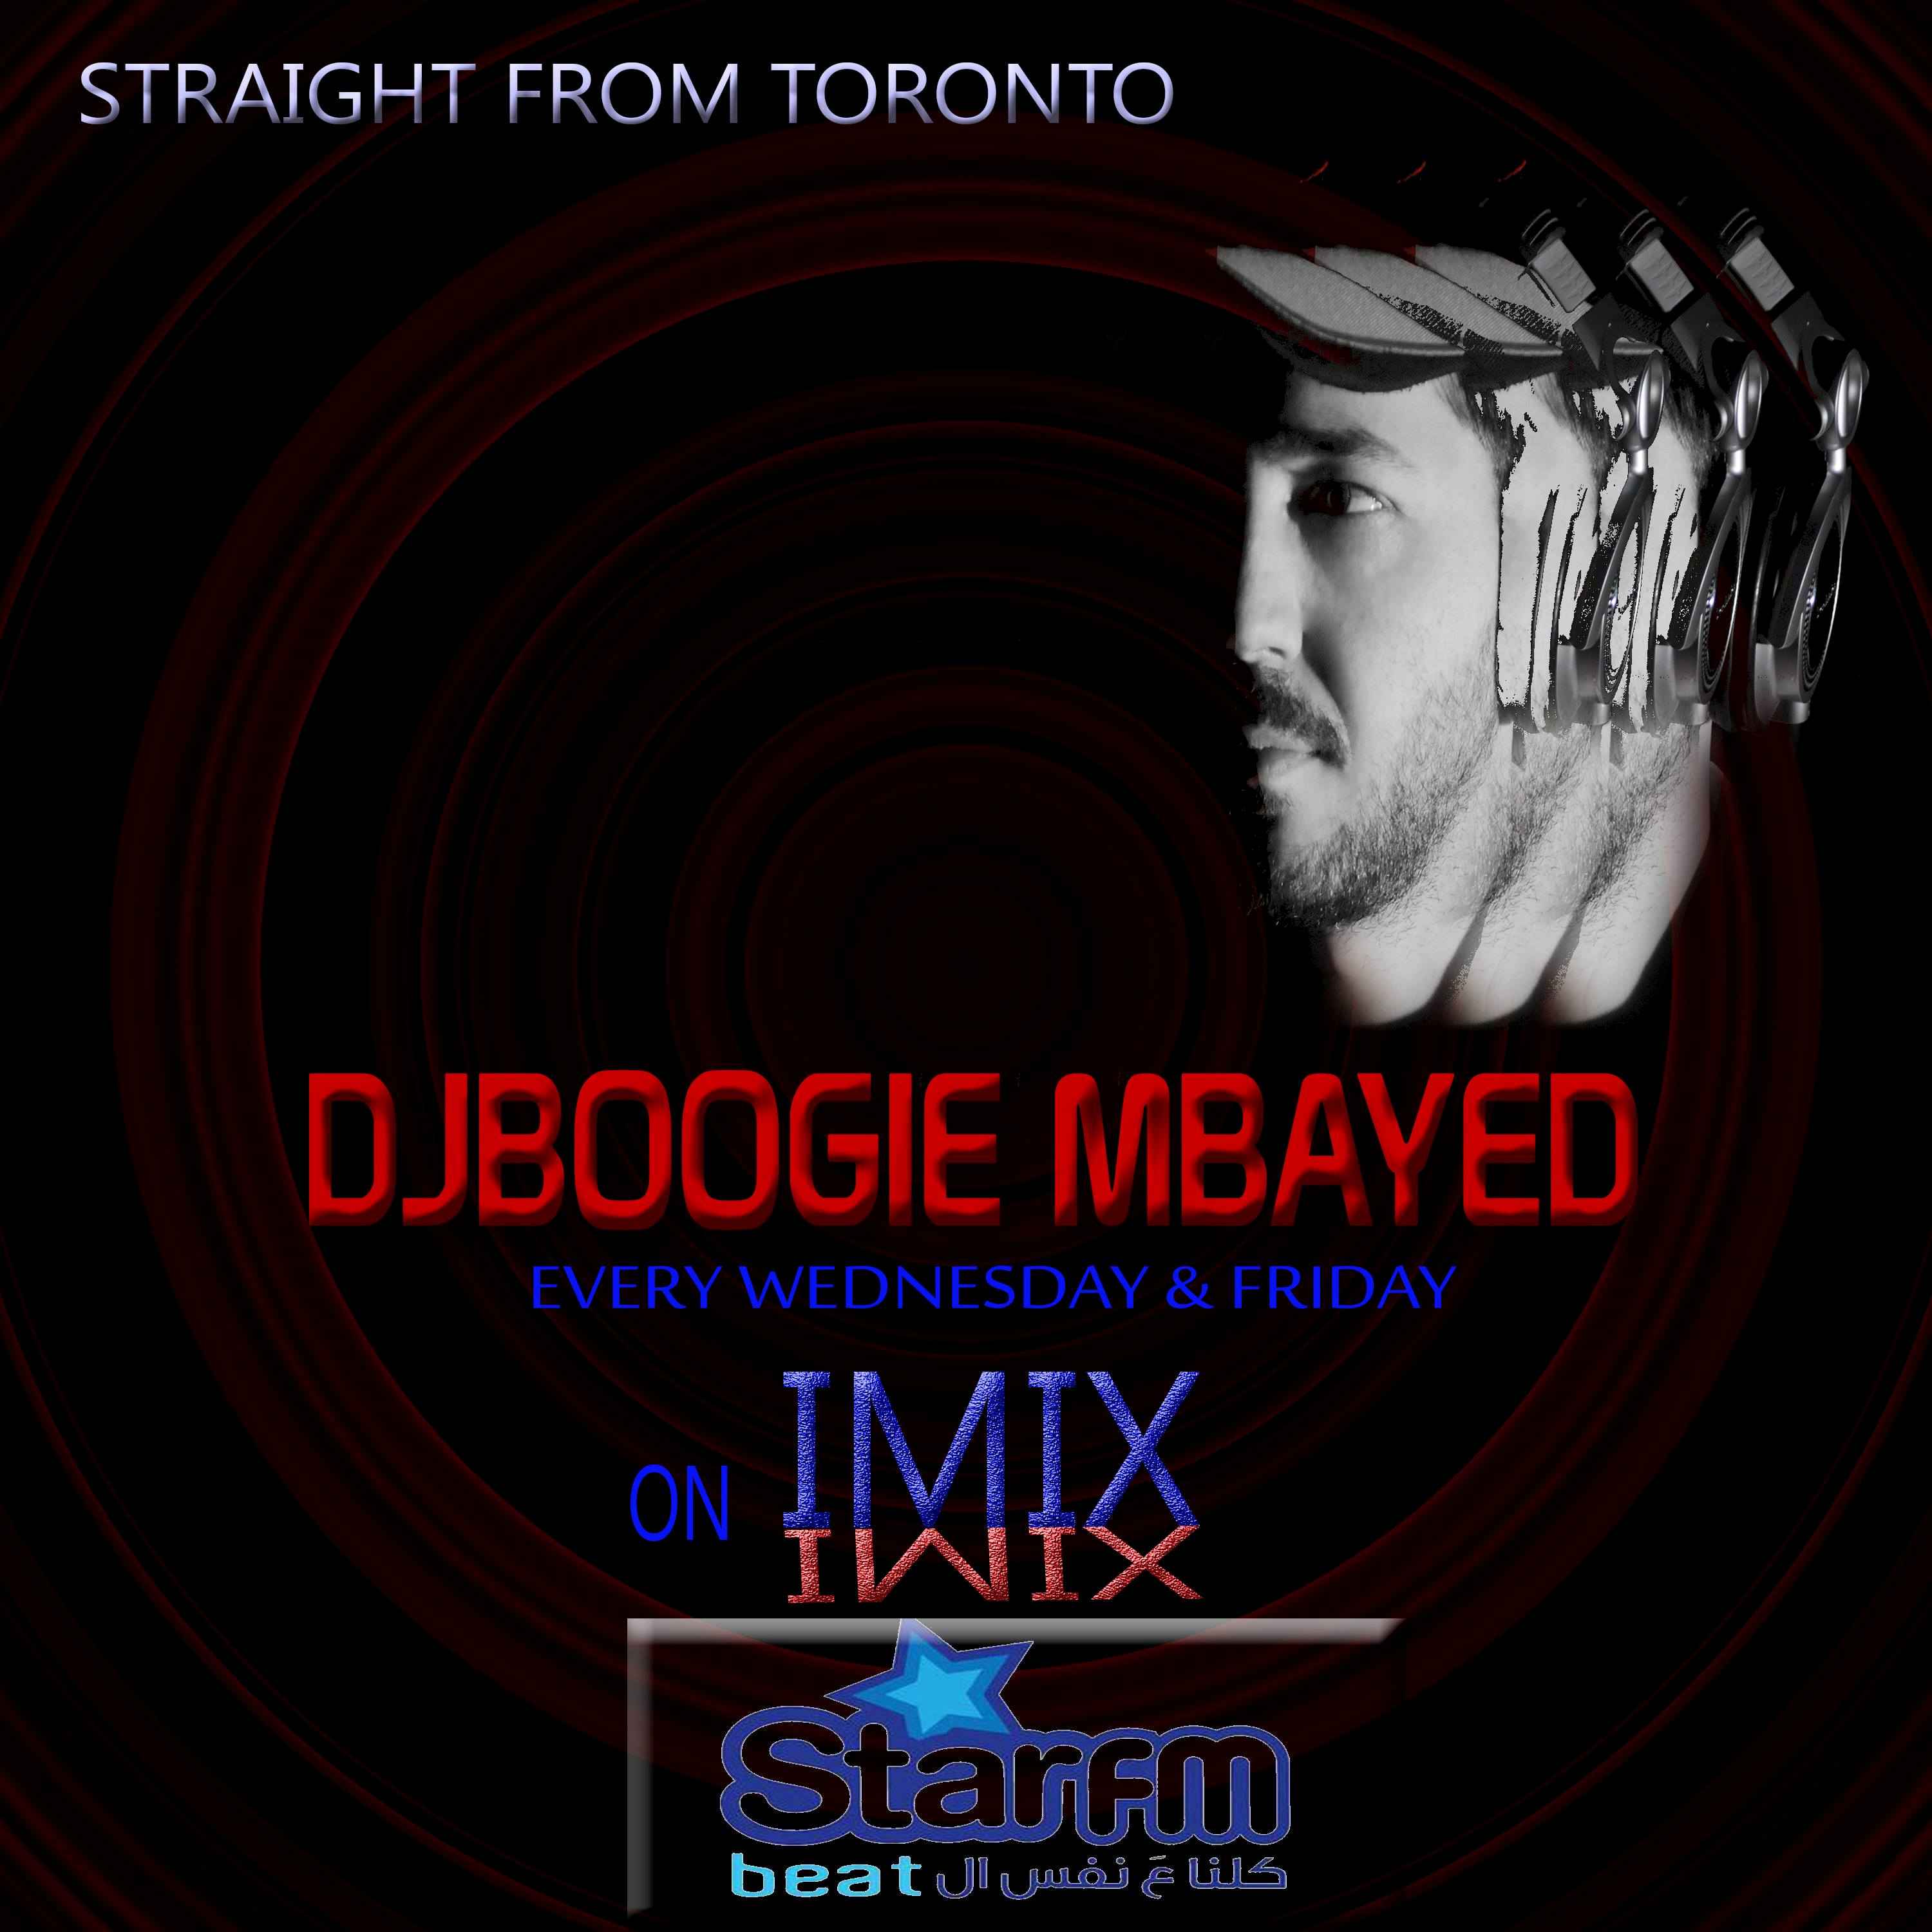 IMIX Deep Chill with DJ BOOGIE